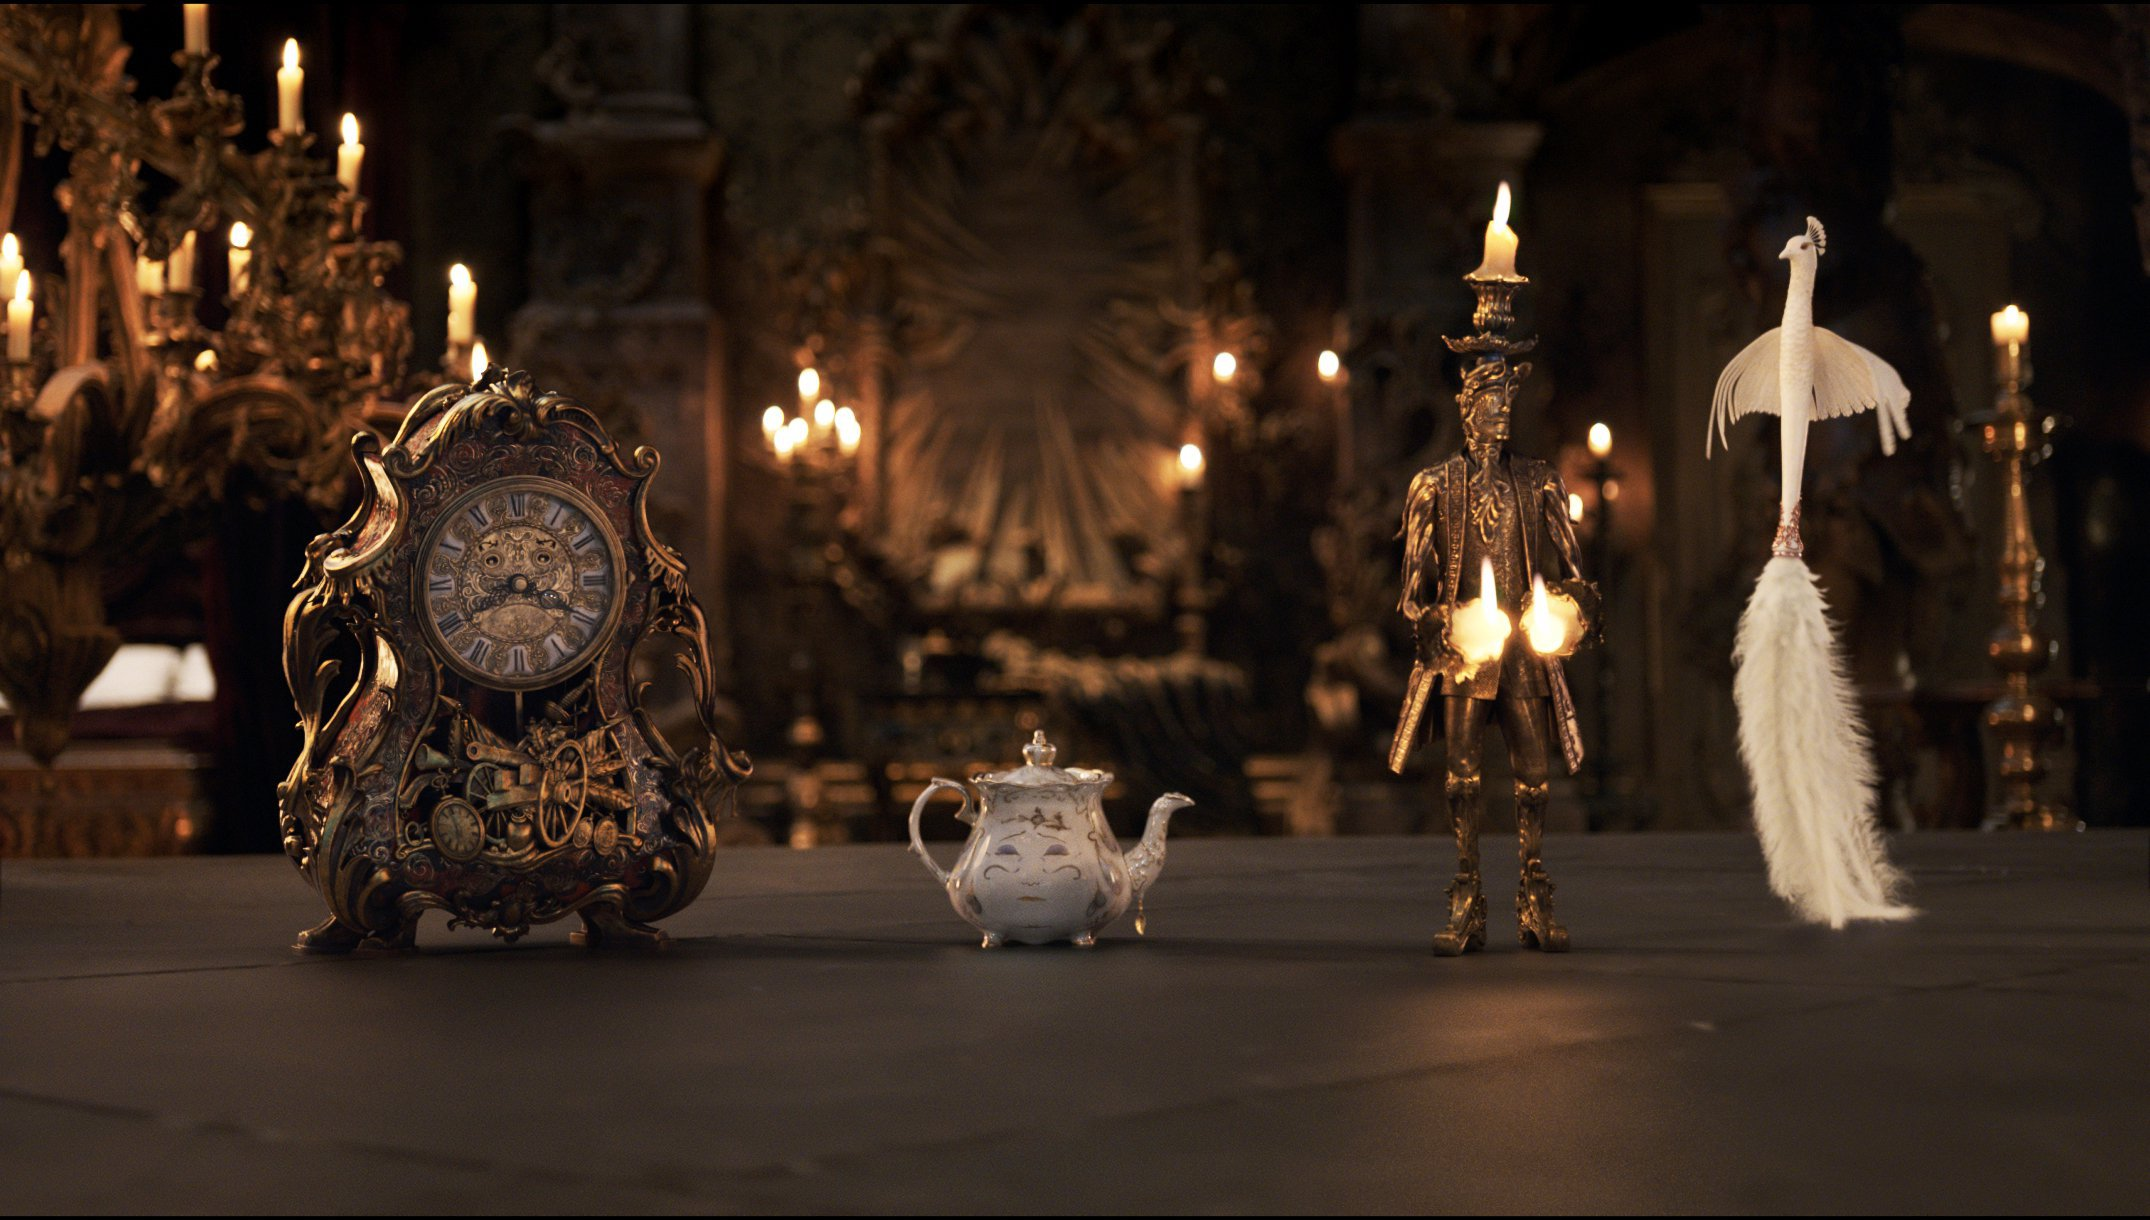 New Images from Disney's Live-Action BEAUTY AND THE BEAST Starring Emma Watson